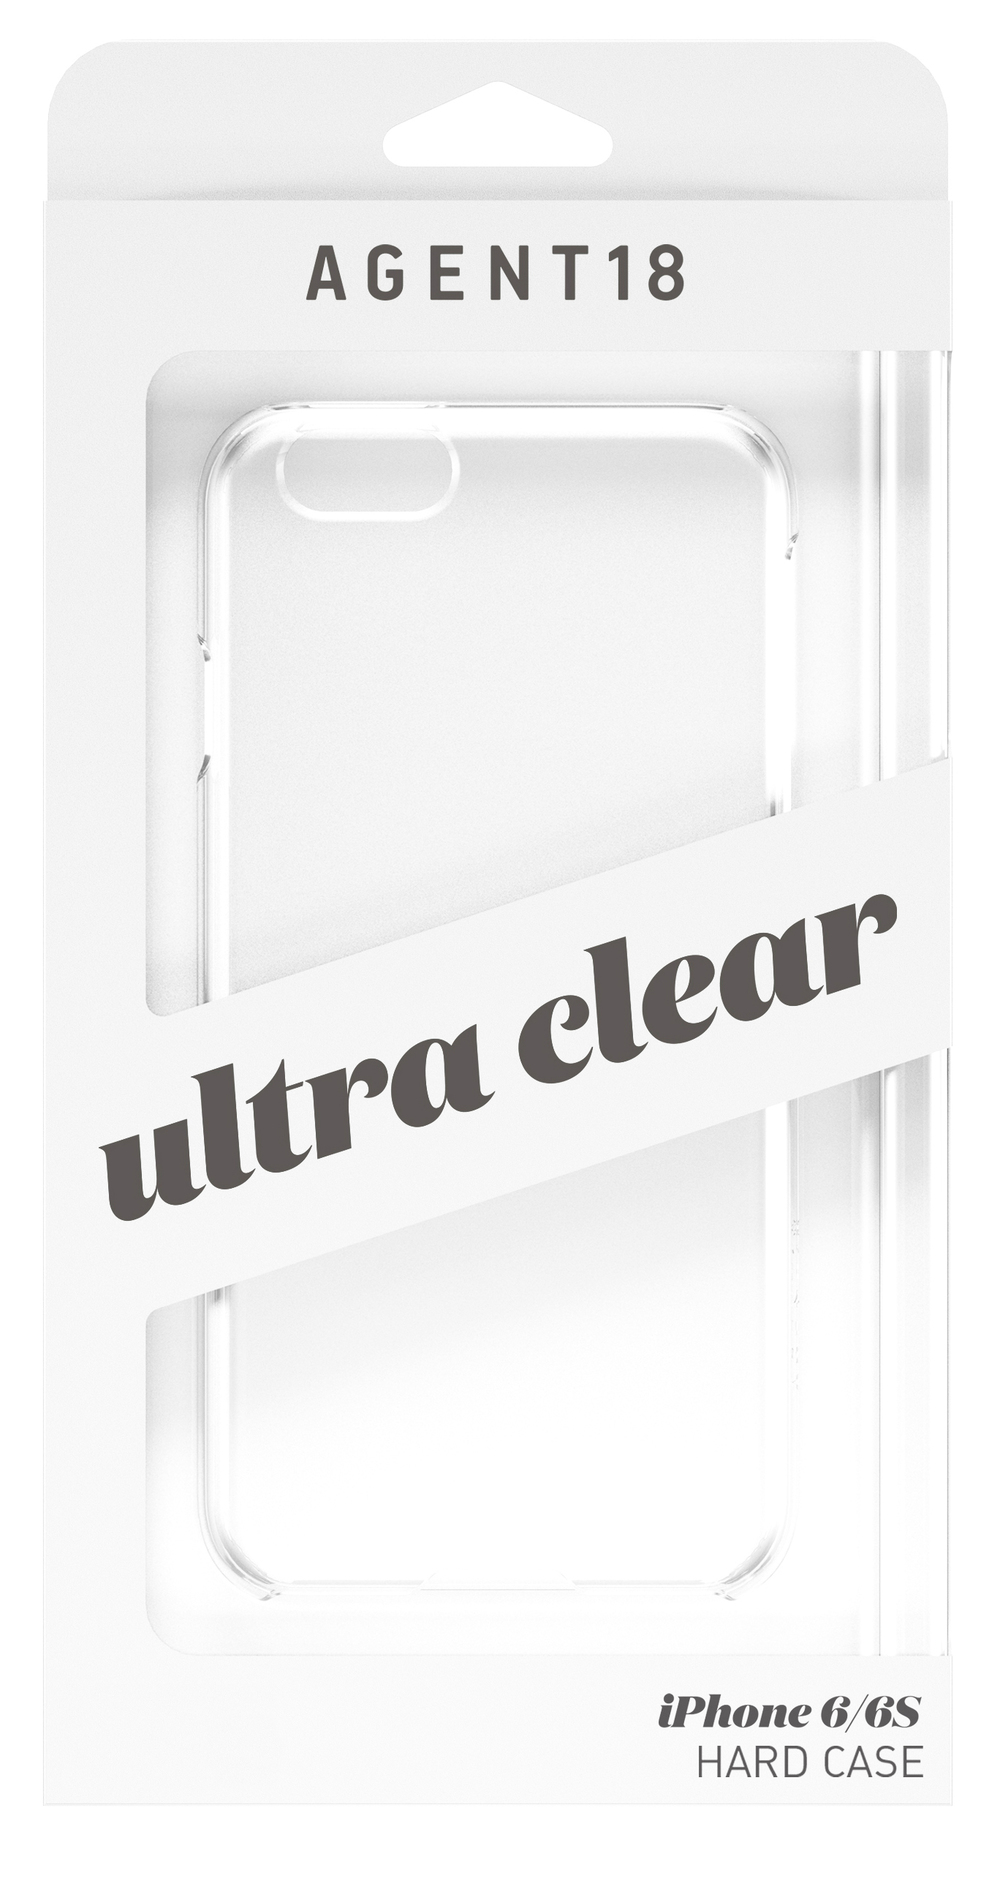 TargetEx-PackagingRender-iP6-ClearShield-Clear.jpg